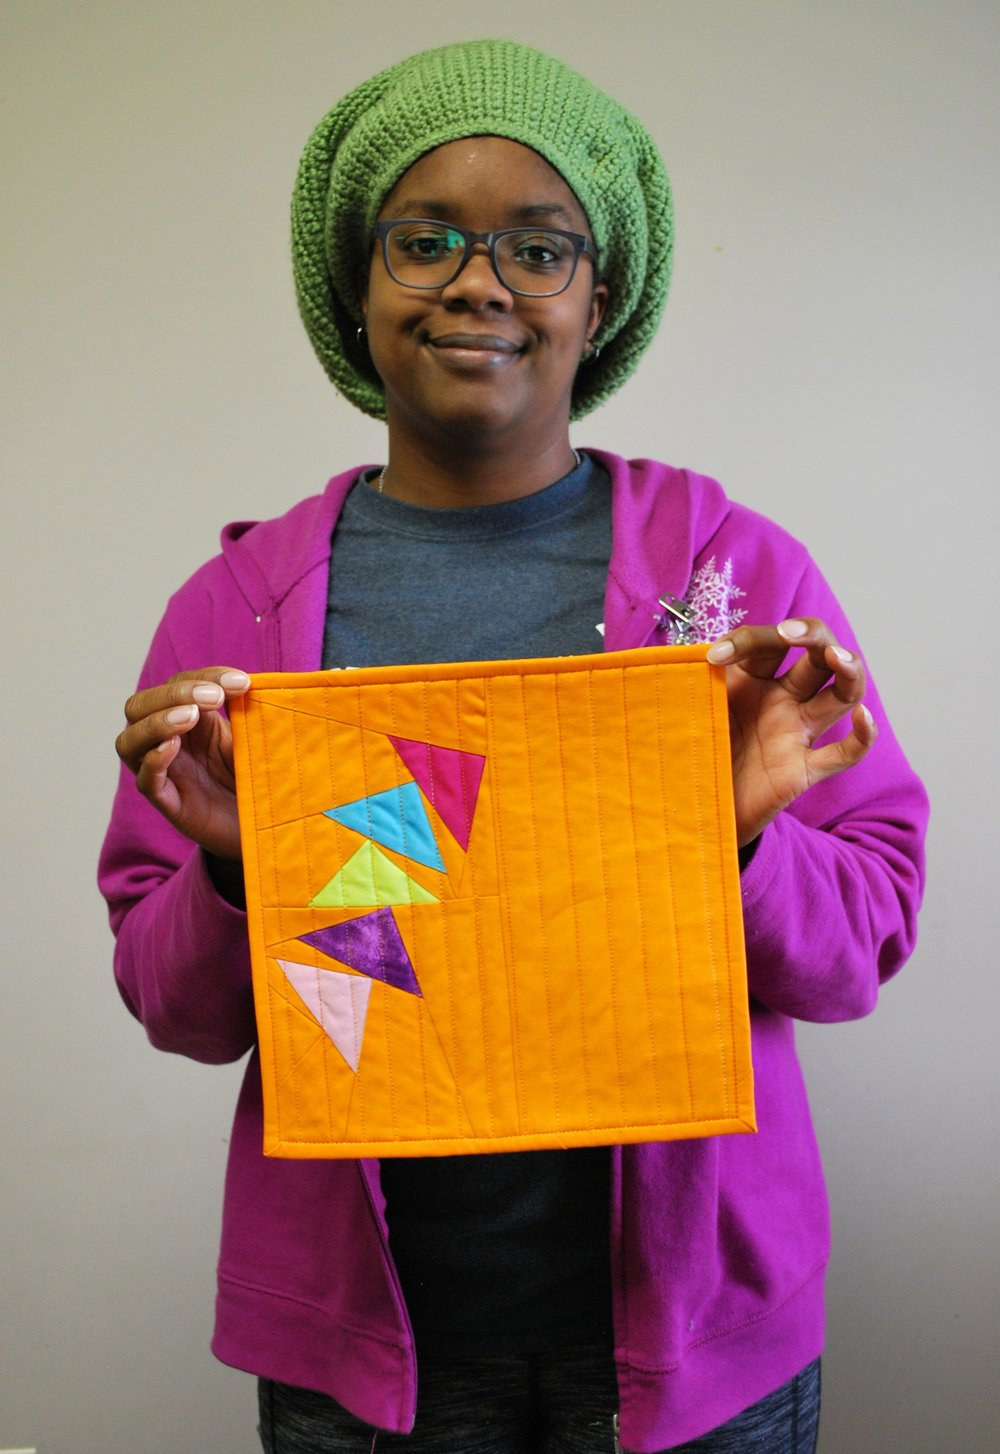 Camille Miller's entry for the latest Curated Quilts mini quilt challenge